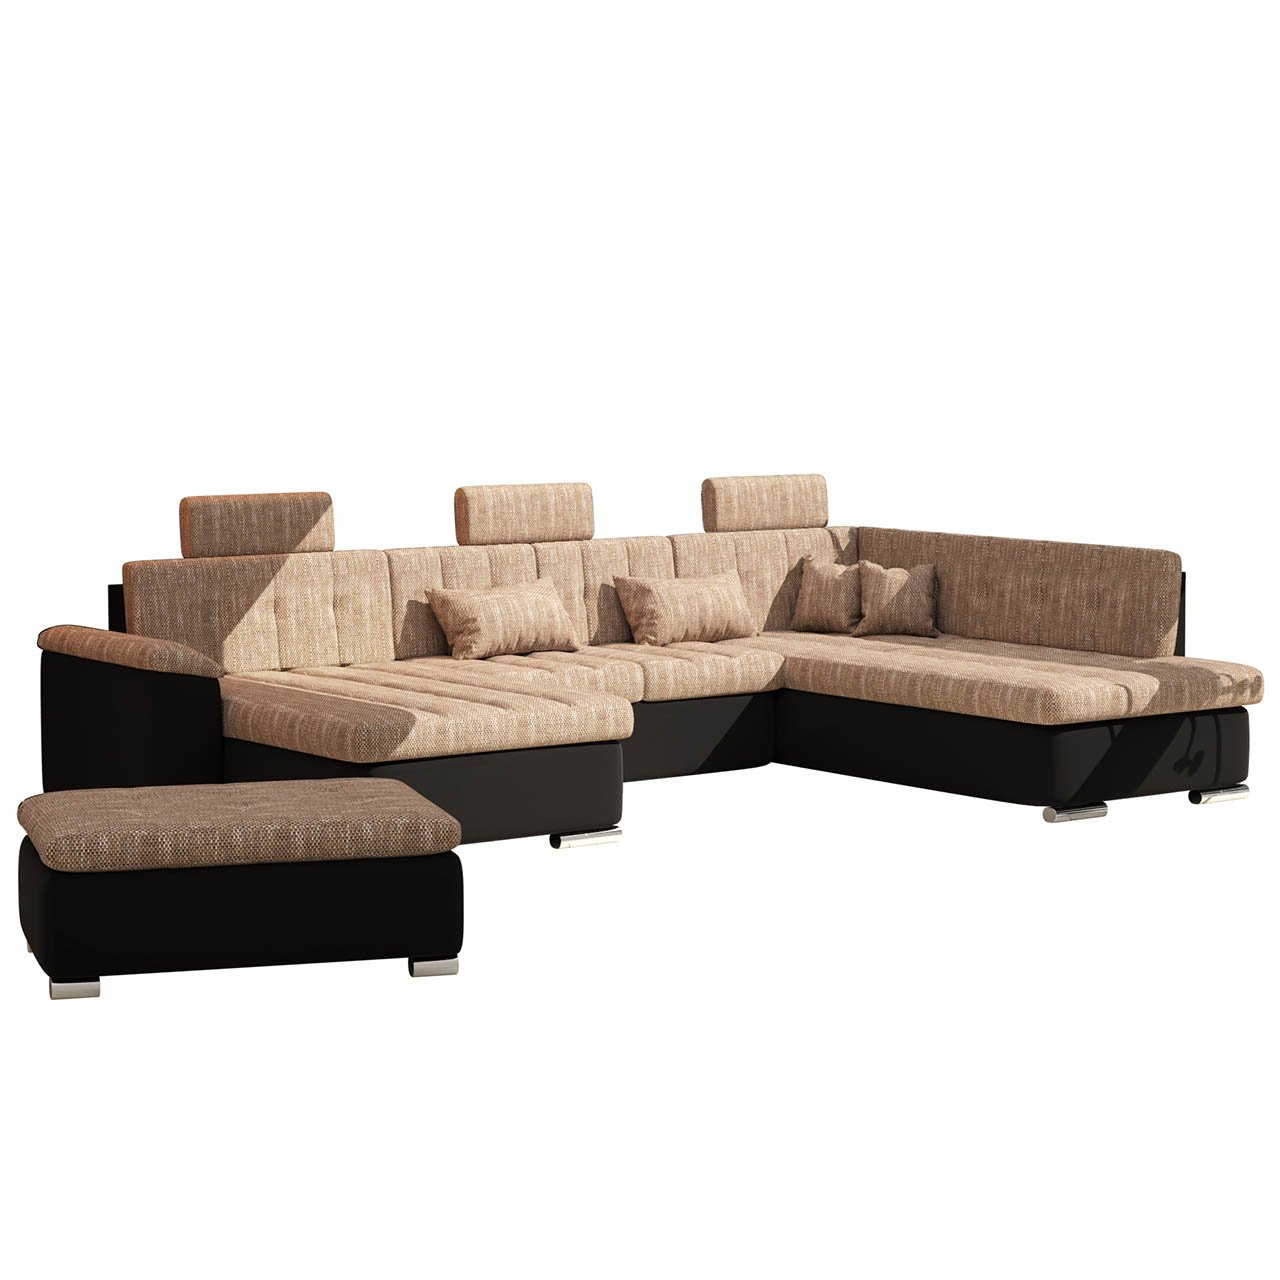 polstergarnitur presto iii polsterhocker ecksofa mit schlaffunktion und kopfst tzen couch. Black Bedroom Furniture Sets. Home Design Ideas